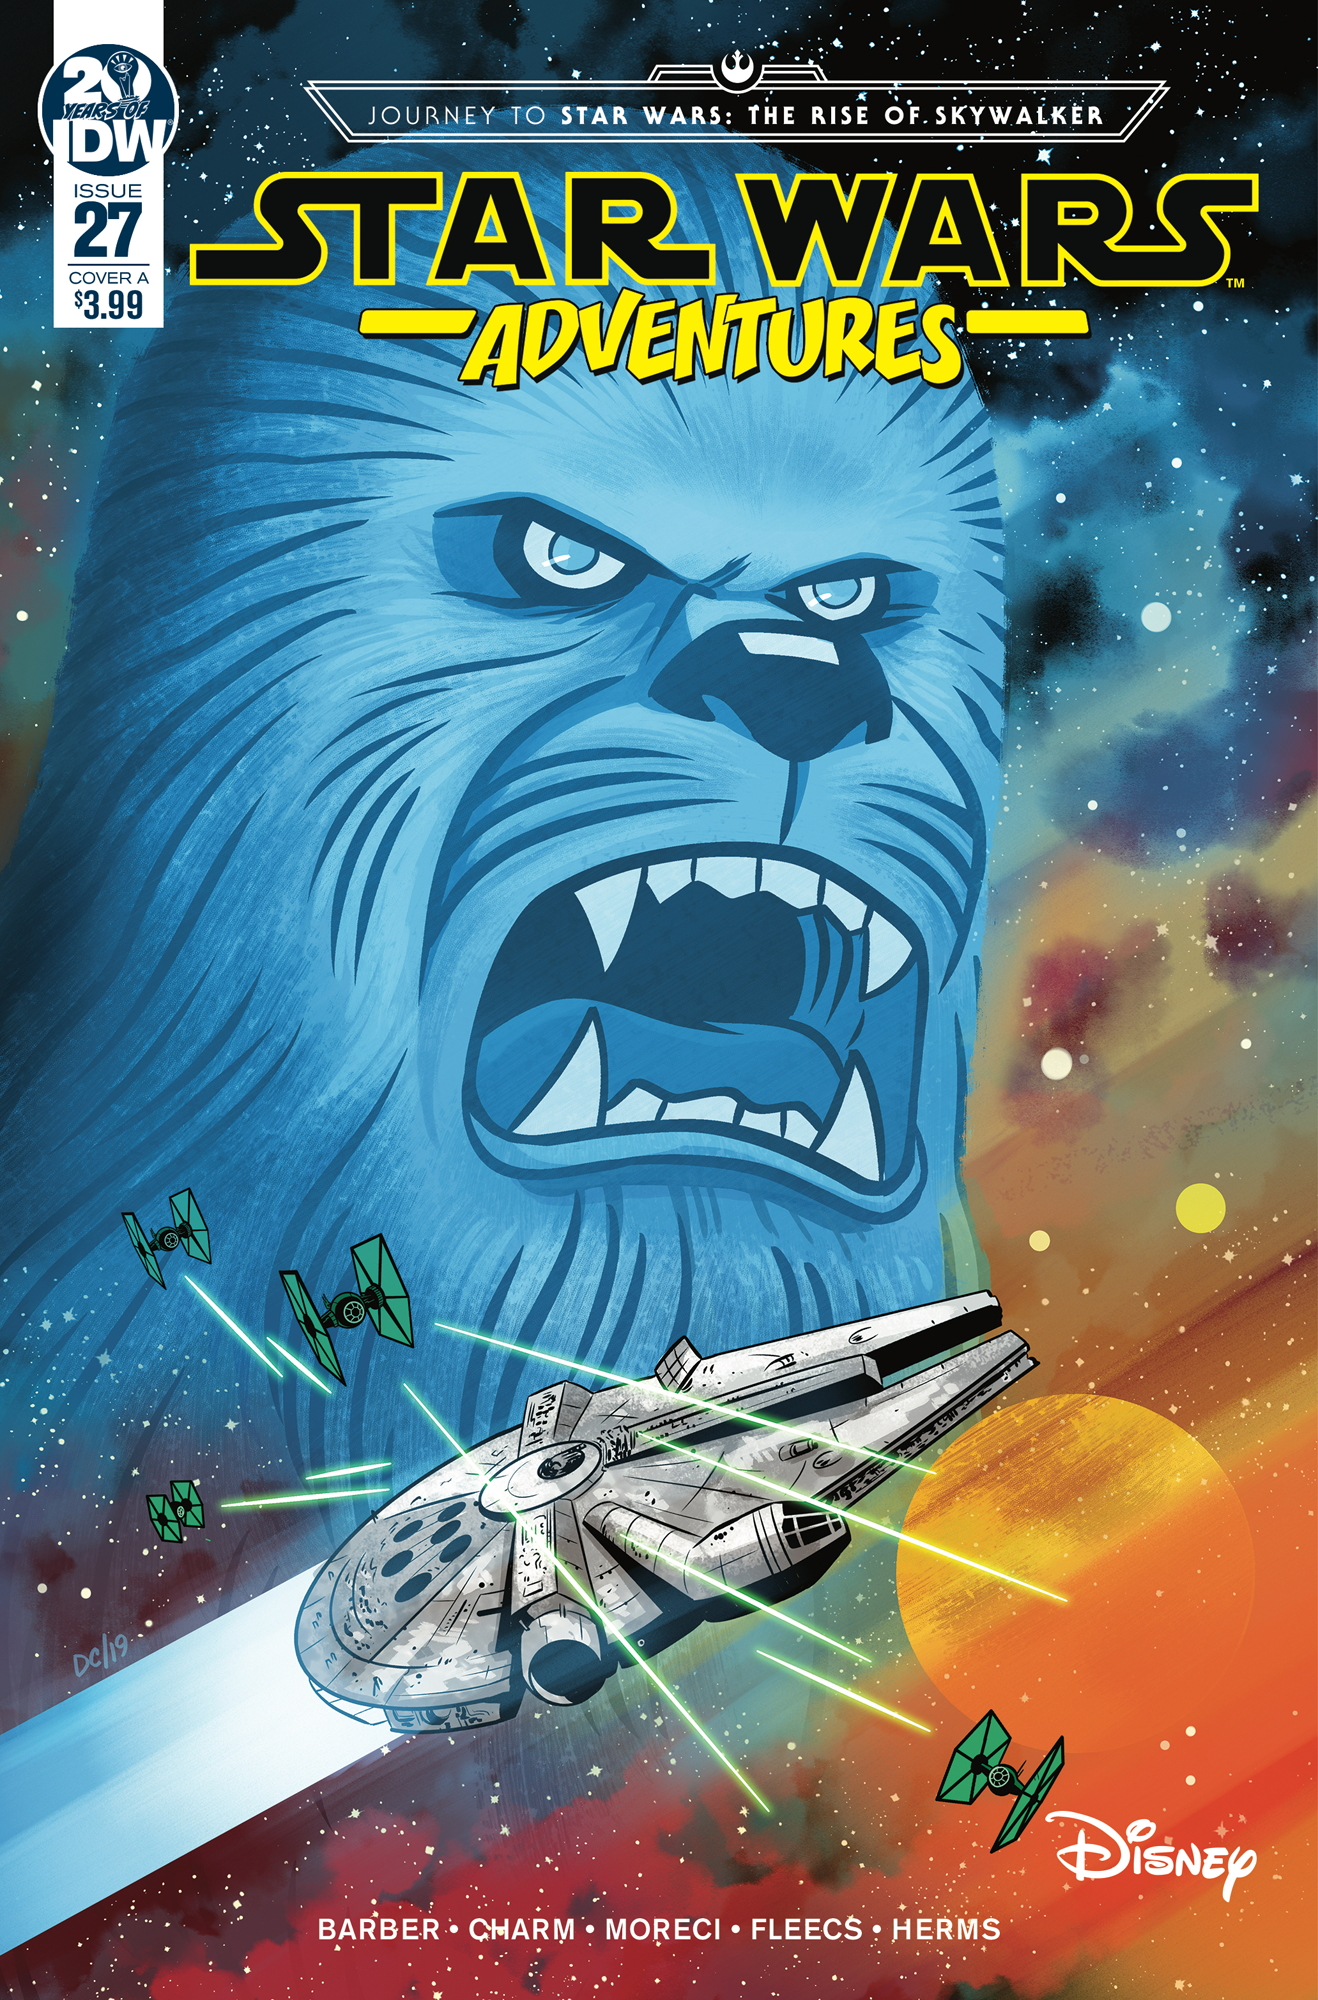 Star Wars Adventures #27 (Cover A by Derek Charm)